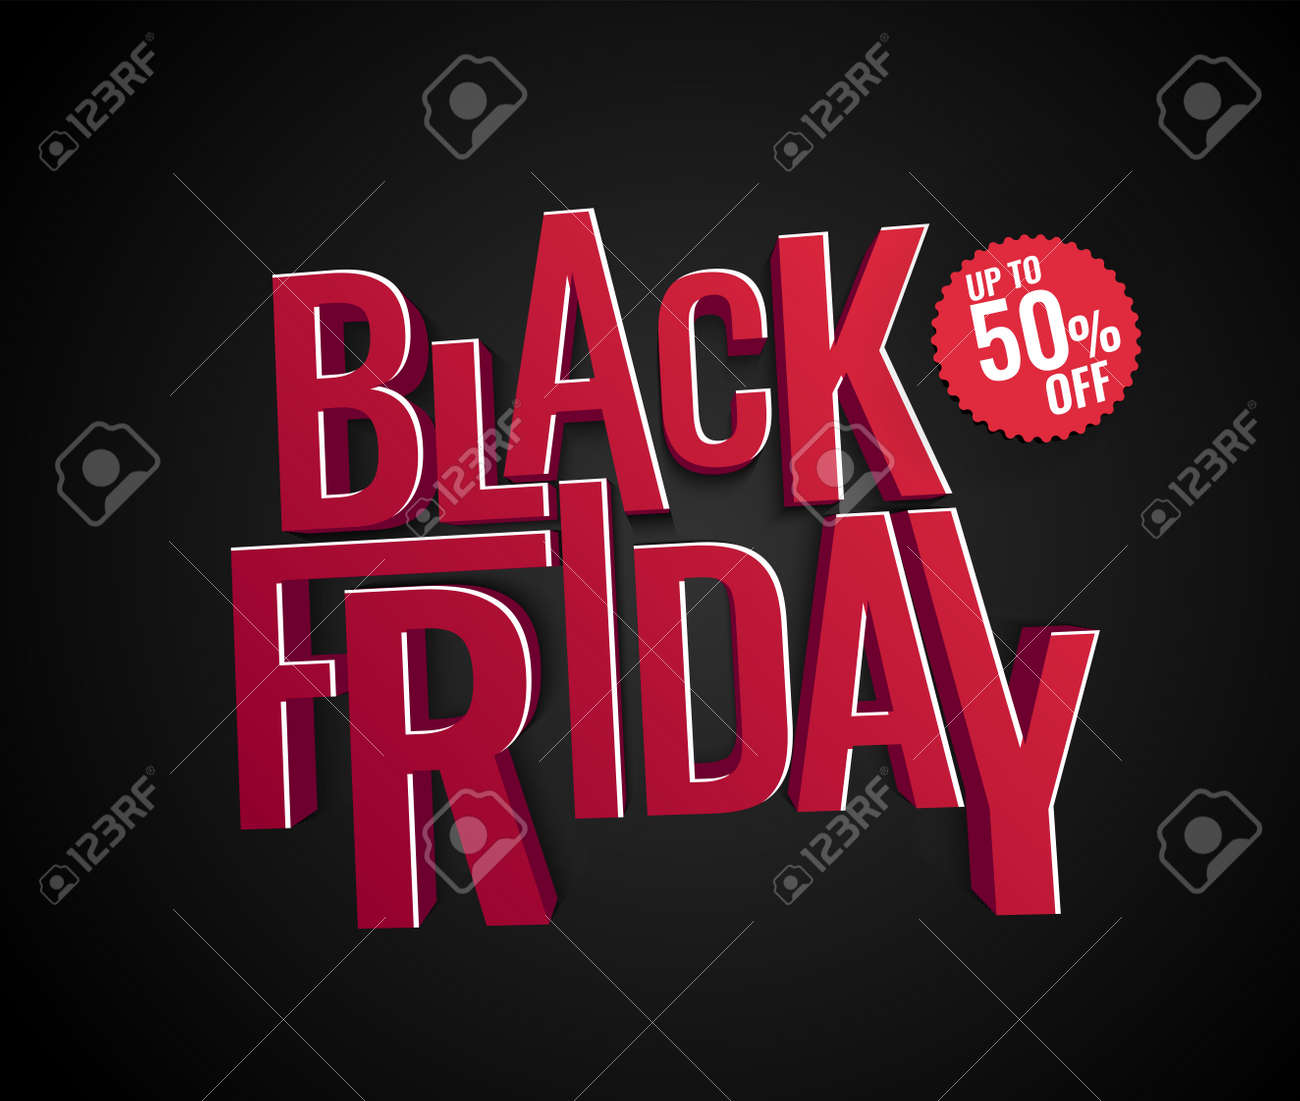 Black Friday Specials Black Friday Sale Inscription Design Template Special Offer Vector Illustration Up To 50 0ff